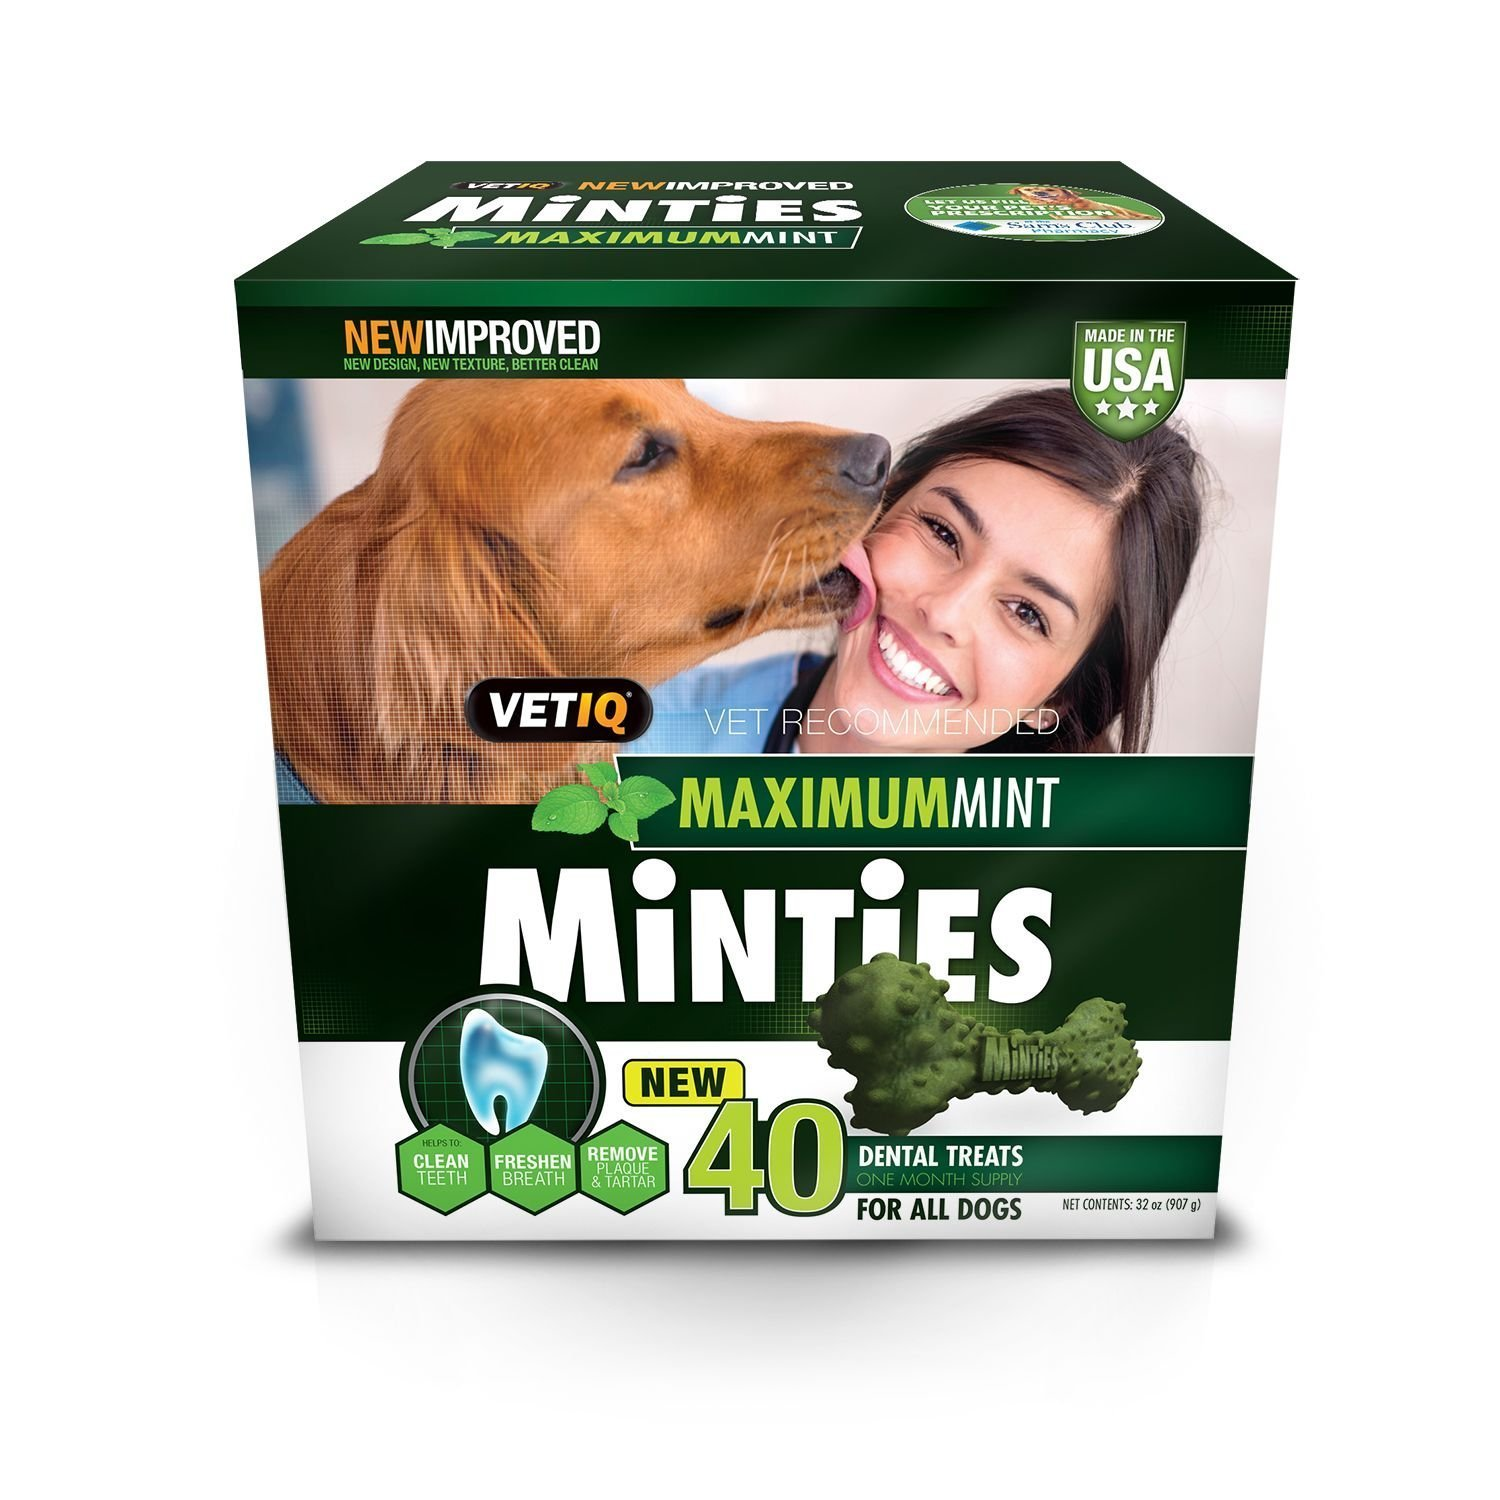 All dogs Minties Dental Dog Treats (40 ct.)